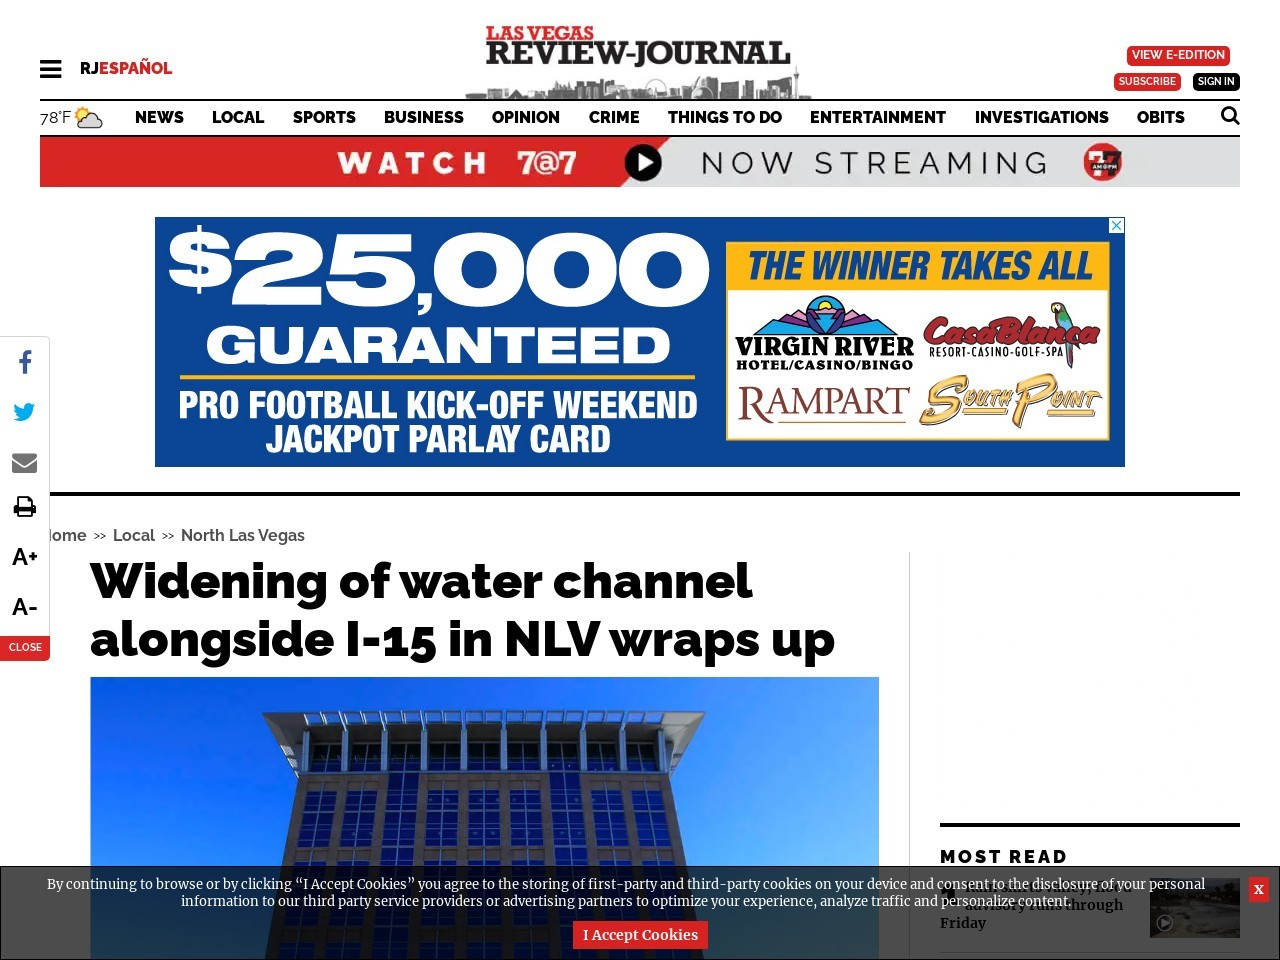 Widening of water channel alongside I-15 in NLV wraps up